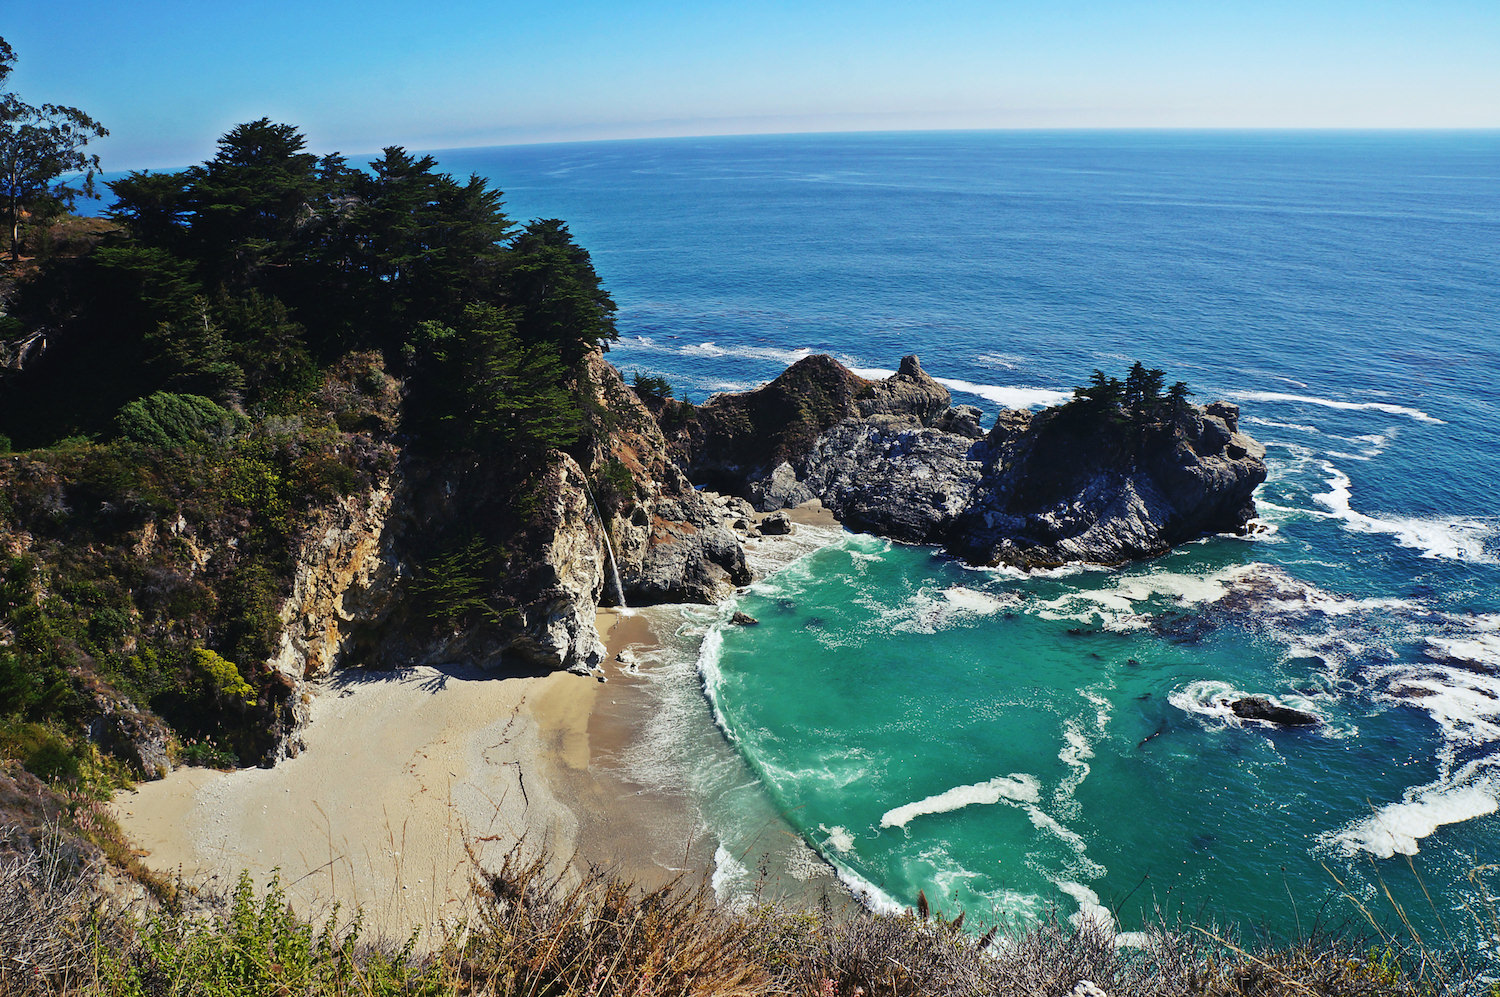 Julia Pfeiffer Burns State Park. Absolutely jaw-dropping. Most of the beaches (like this one)are not accessible. You watch from towering cliffs.